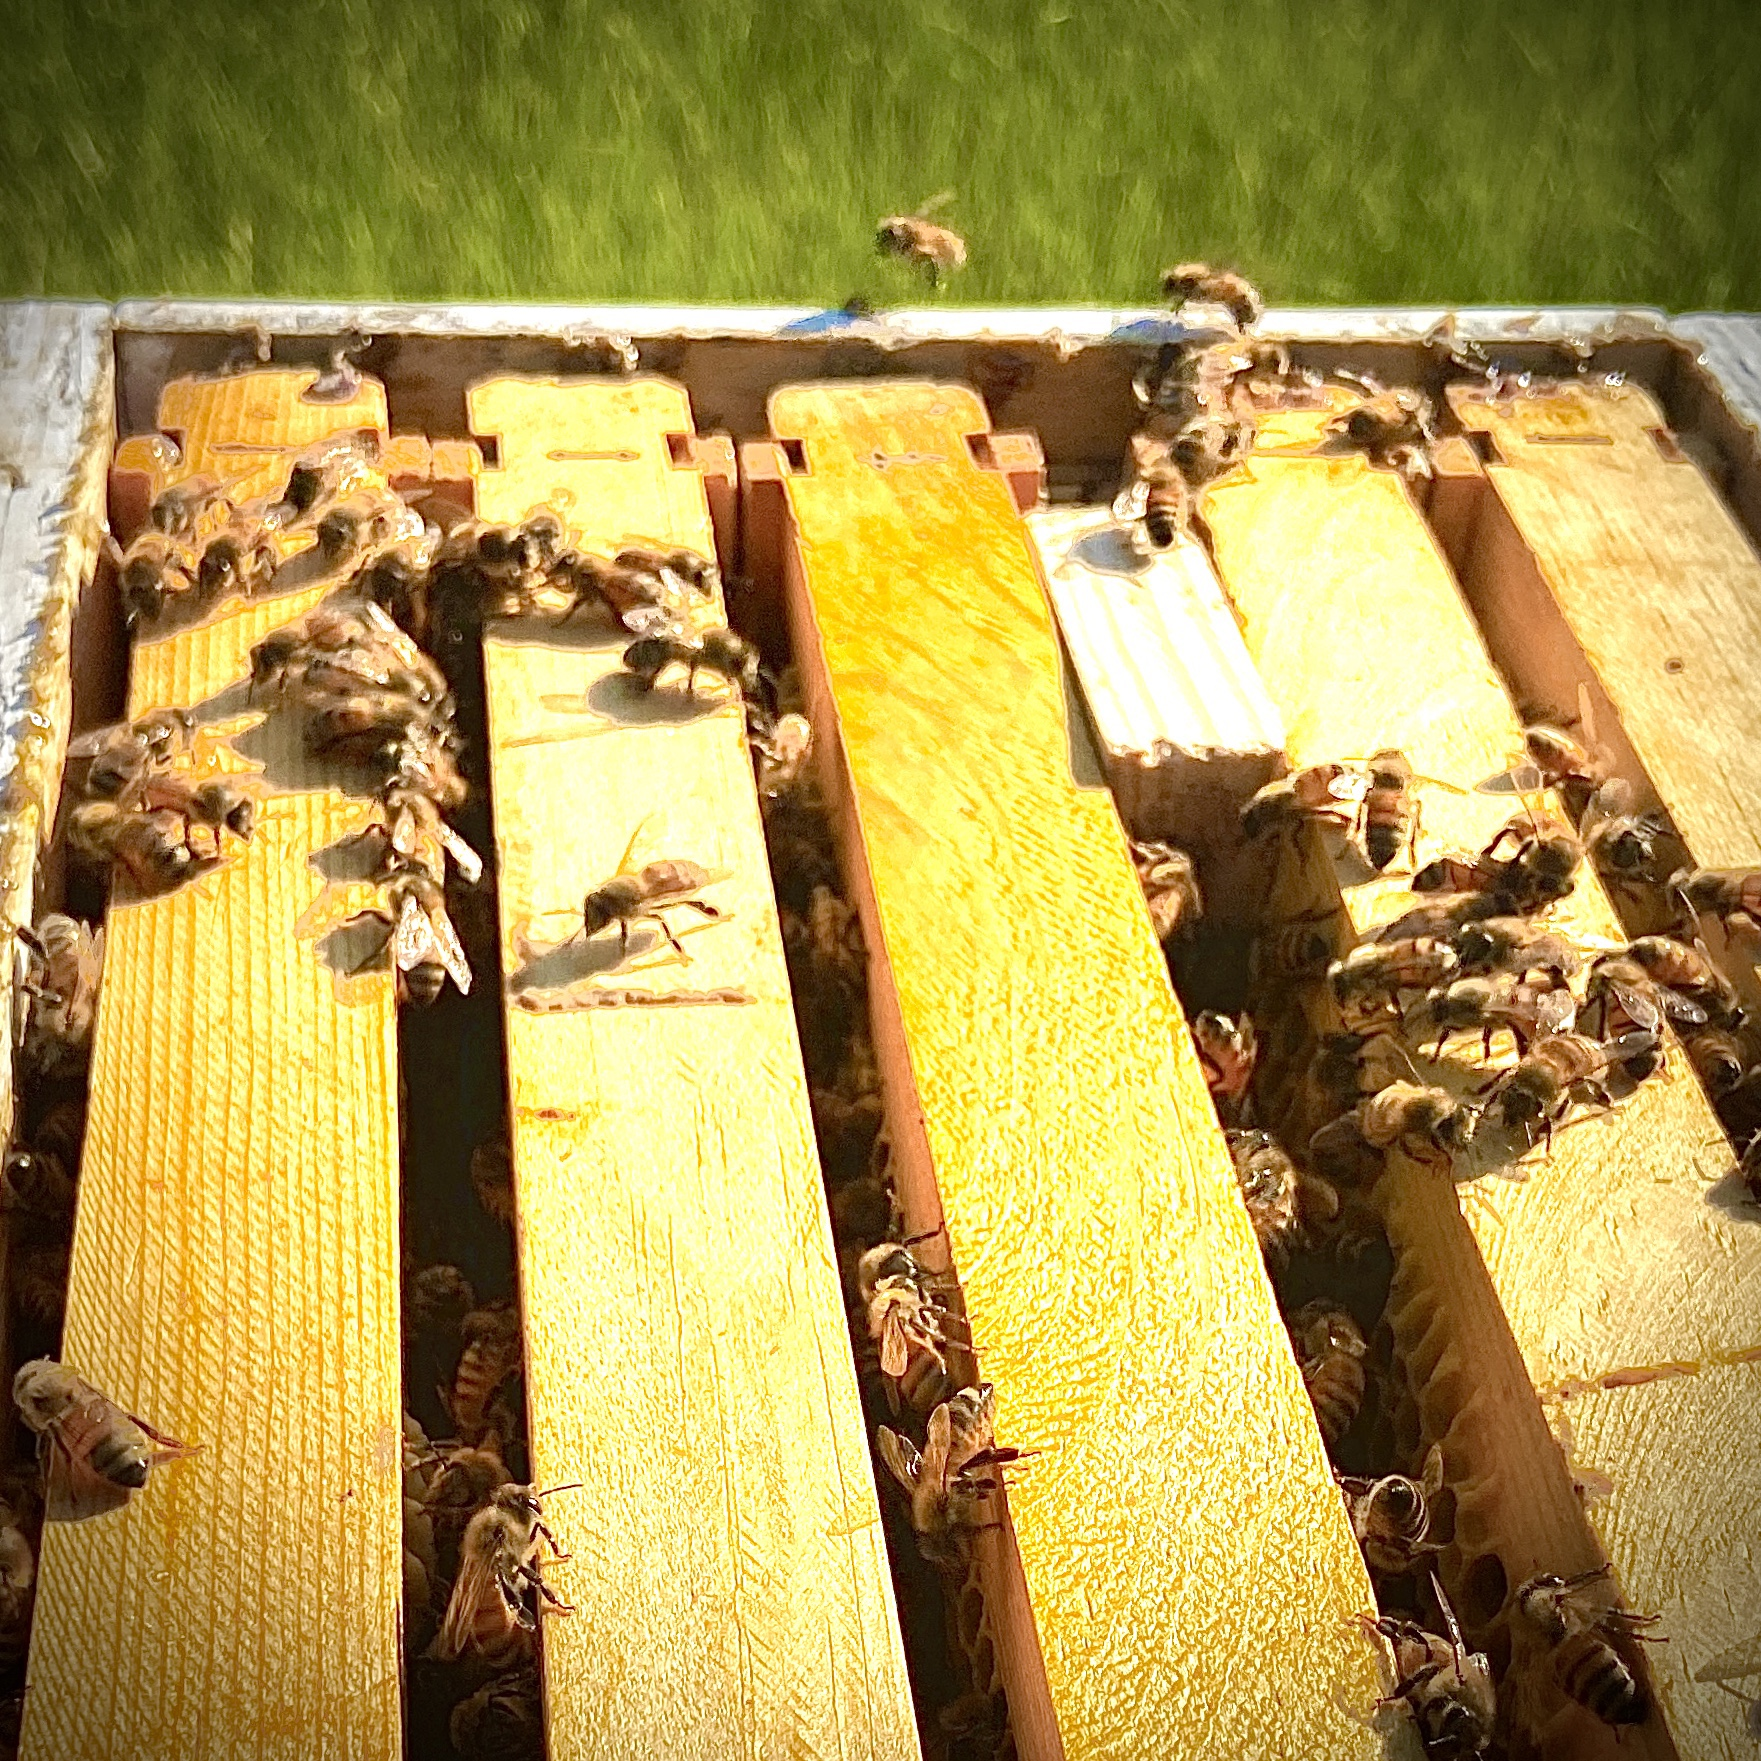 Introduce queen bee to hive using a mailing box method.